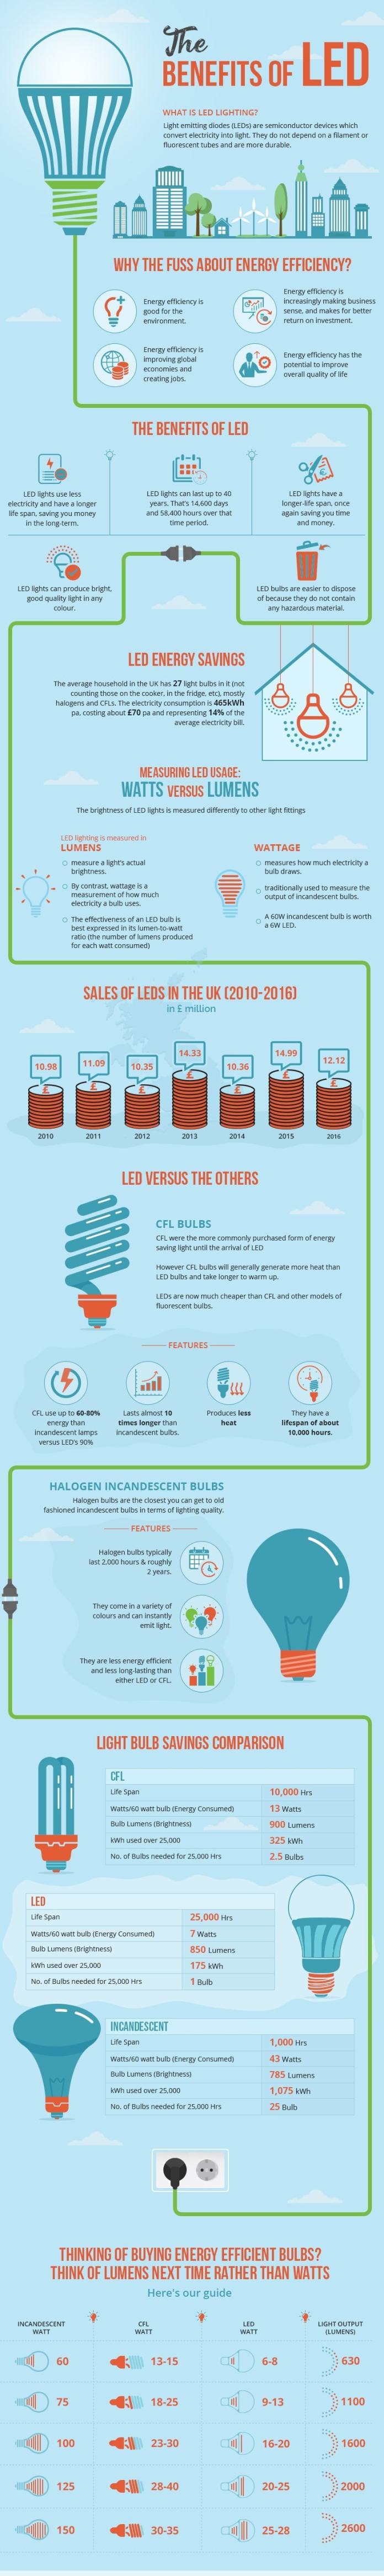 This infographic displays all of the key benefits of LED lighting and why you should consider making the switch from incandescent and halogen light bulbs.